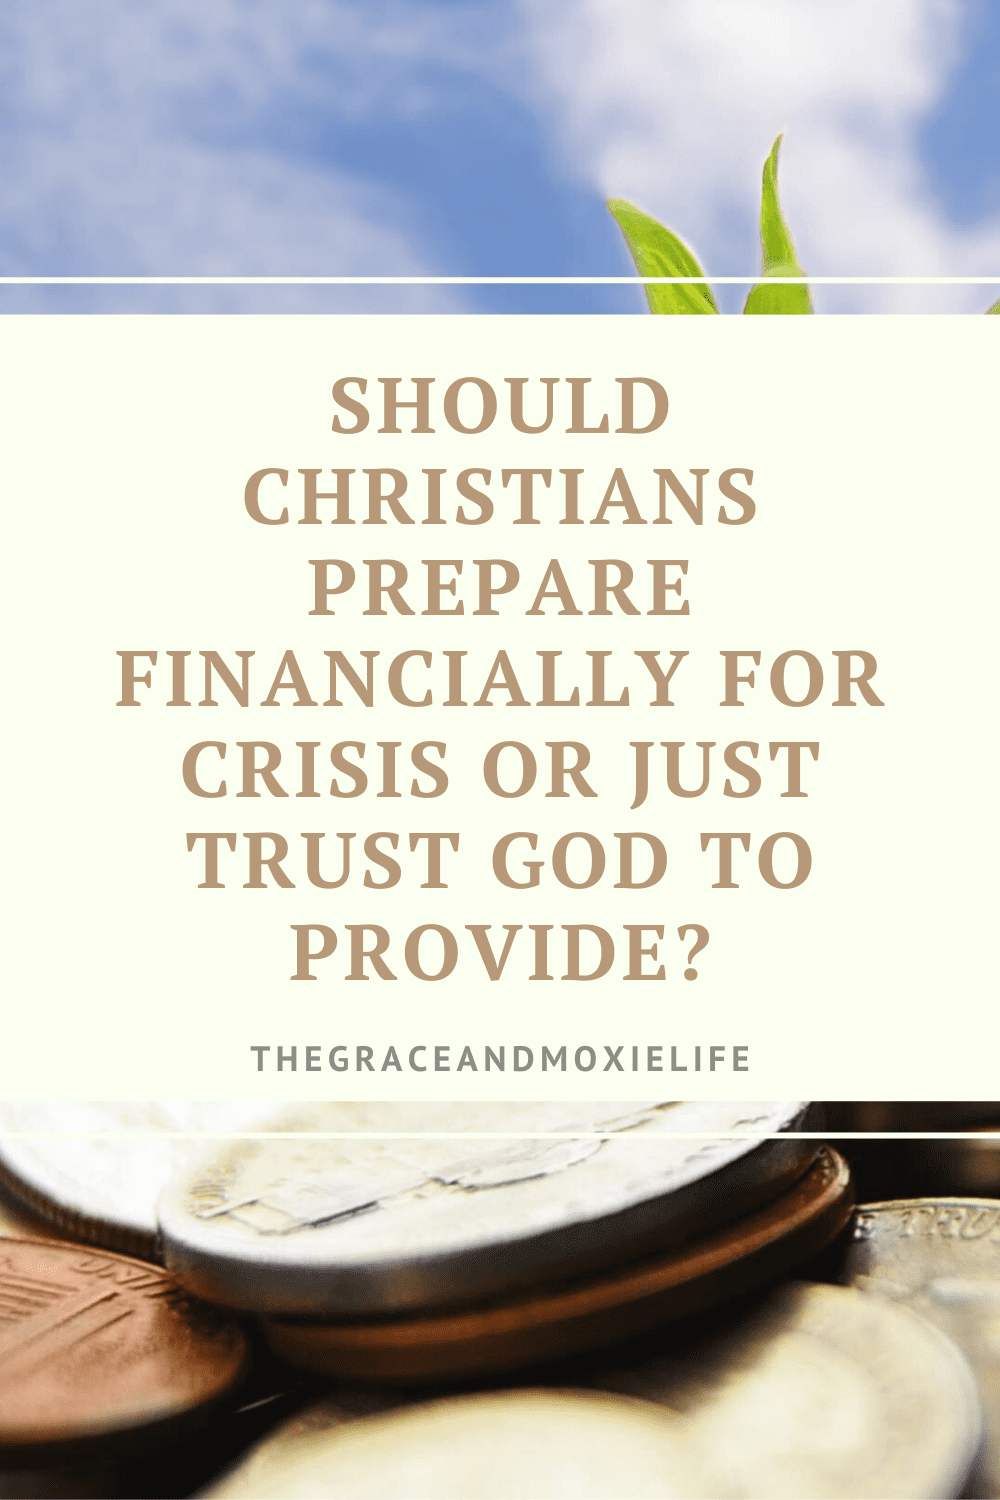 Should Christians Prepare Financially for Crisis or Just Trust God to Provide? | The Grace and Moxie Life